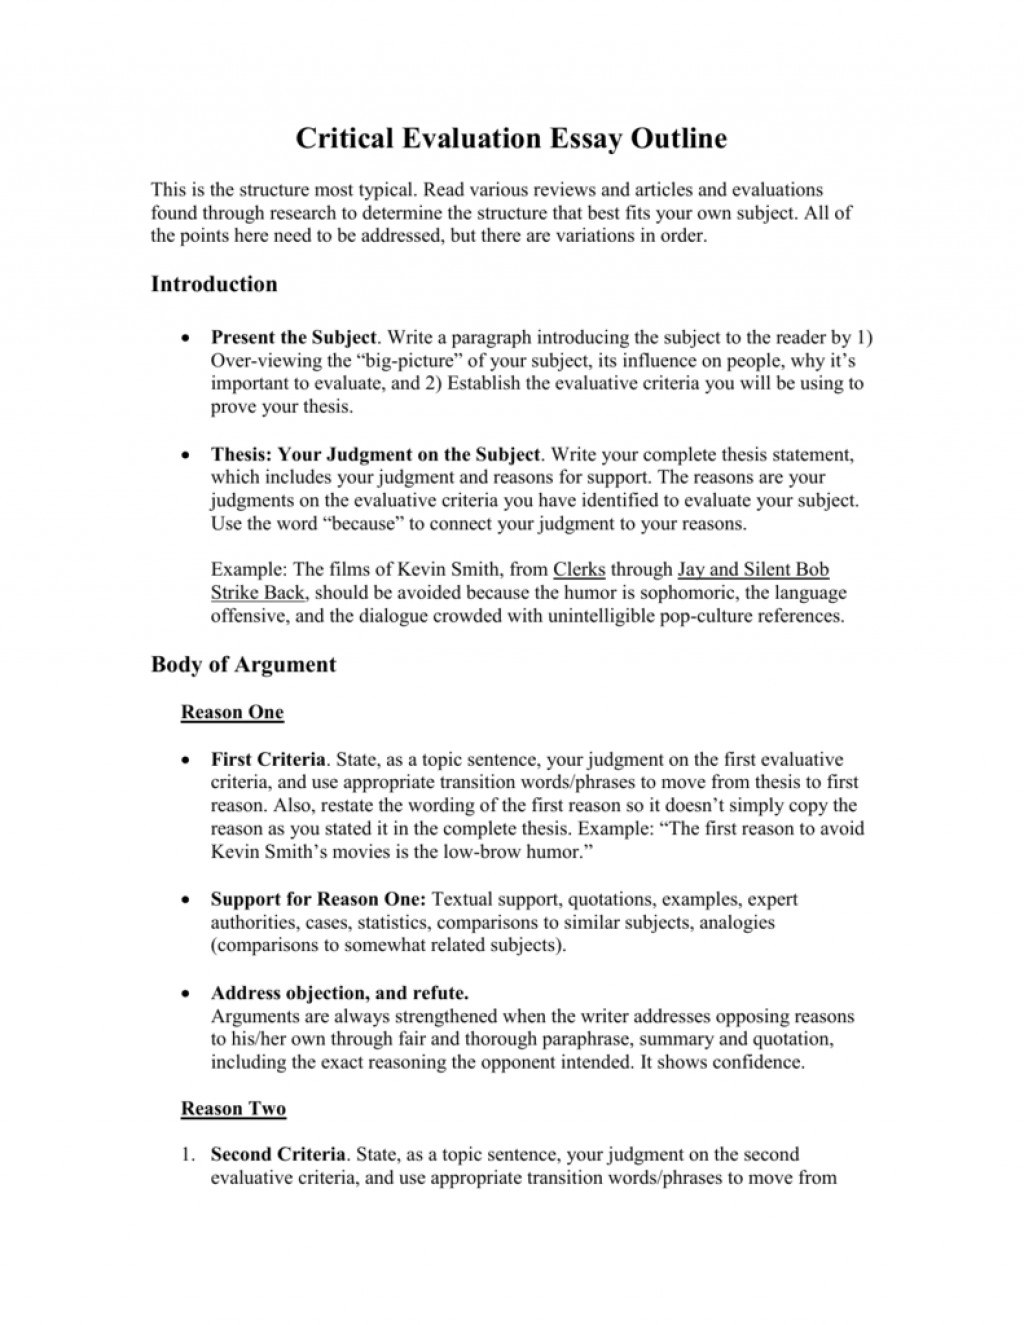 007 Essay Example What Is An Outline 007278317 1 Stunning A Hero Argumentative Format What's Look Like Large